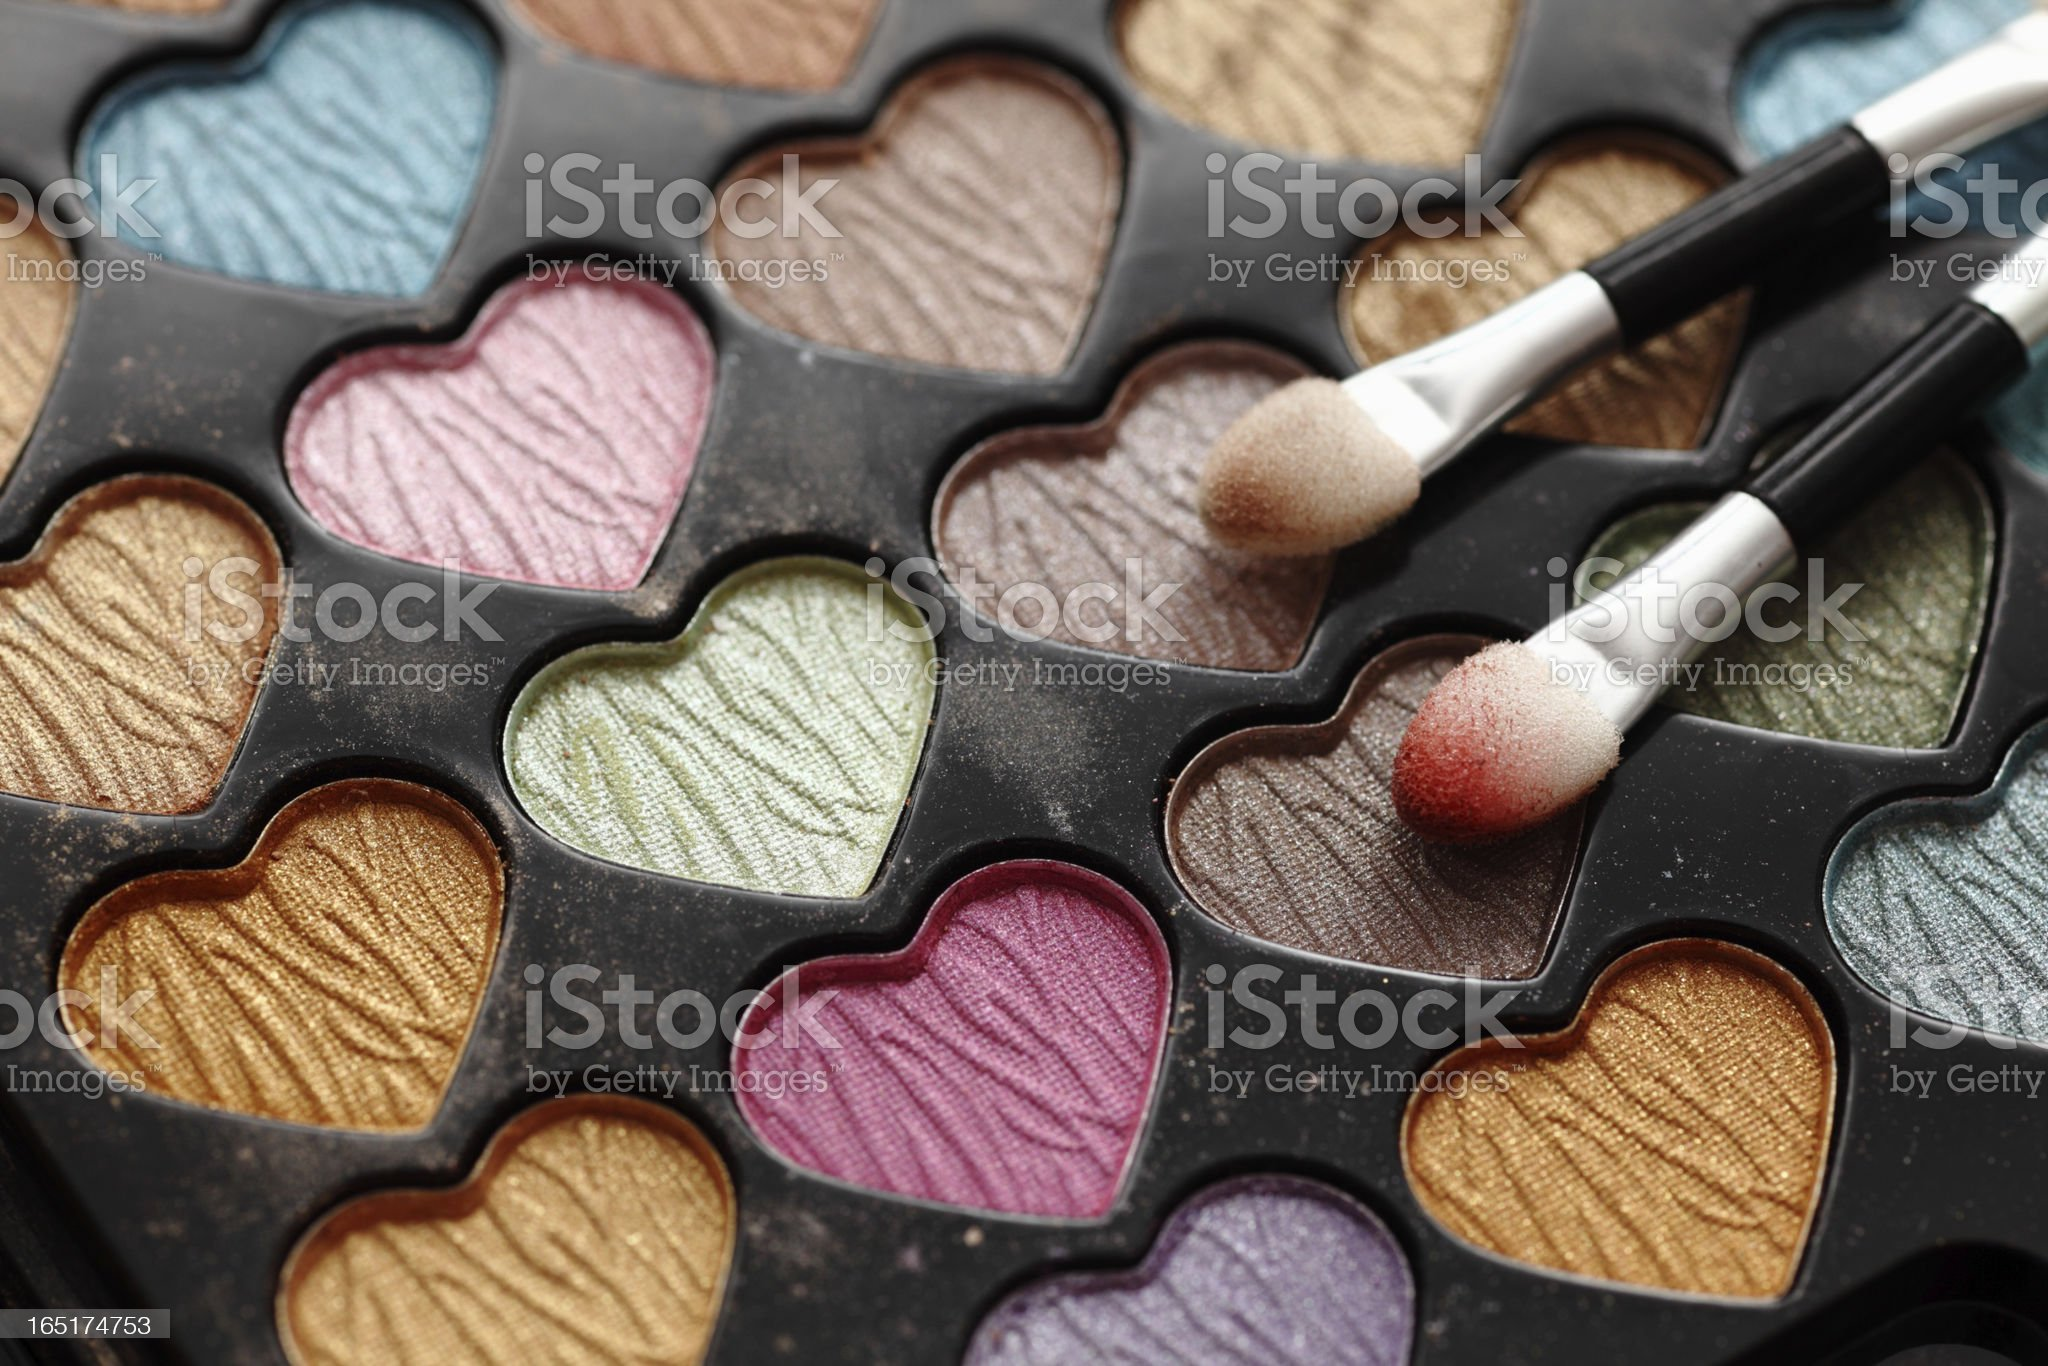 Eyeshadow heart shaped palette with applicators. royalty-free stock photo